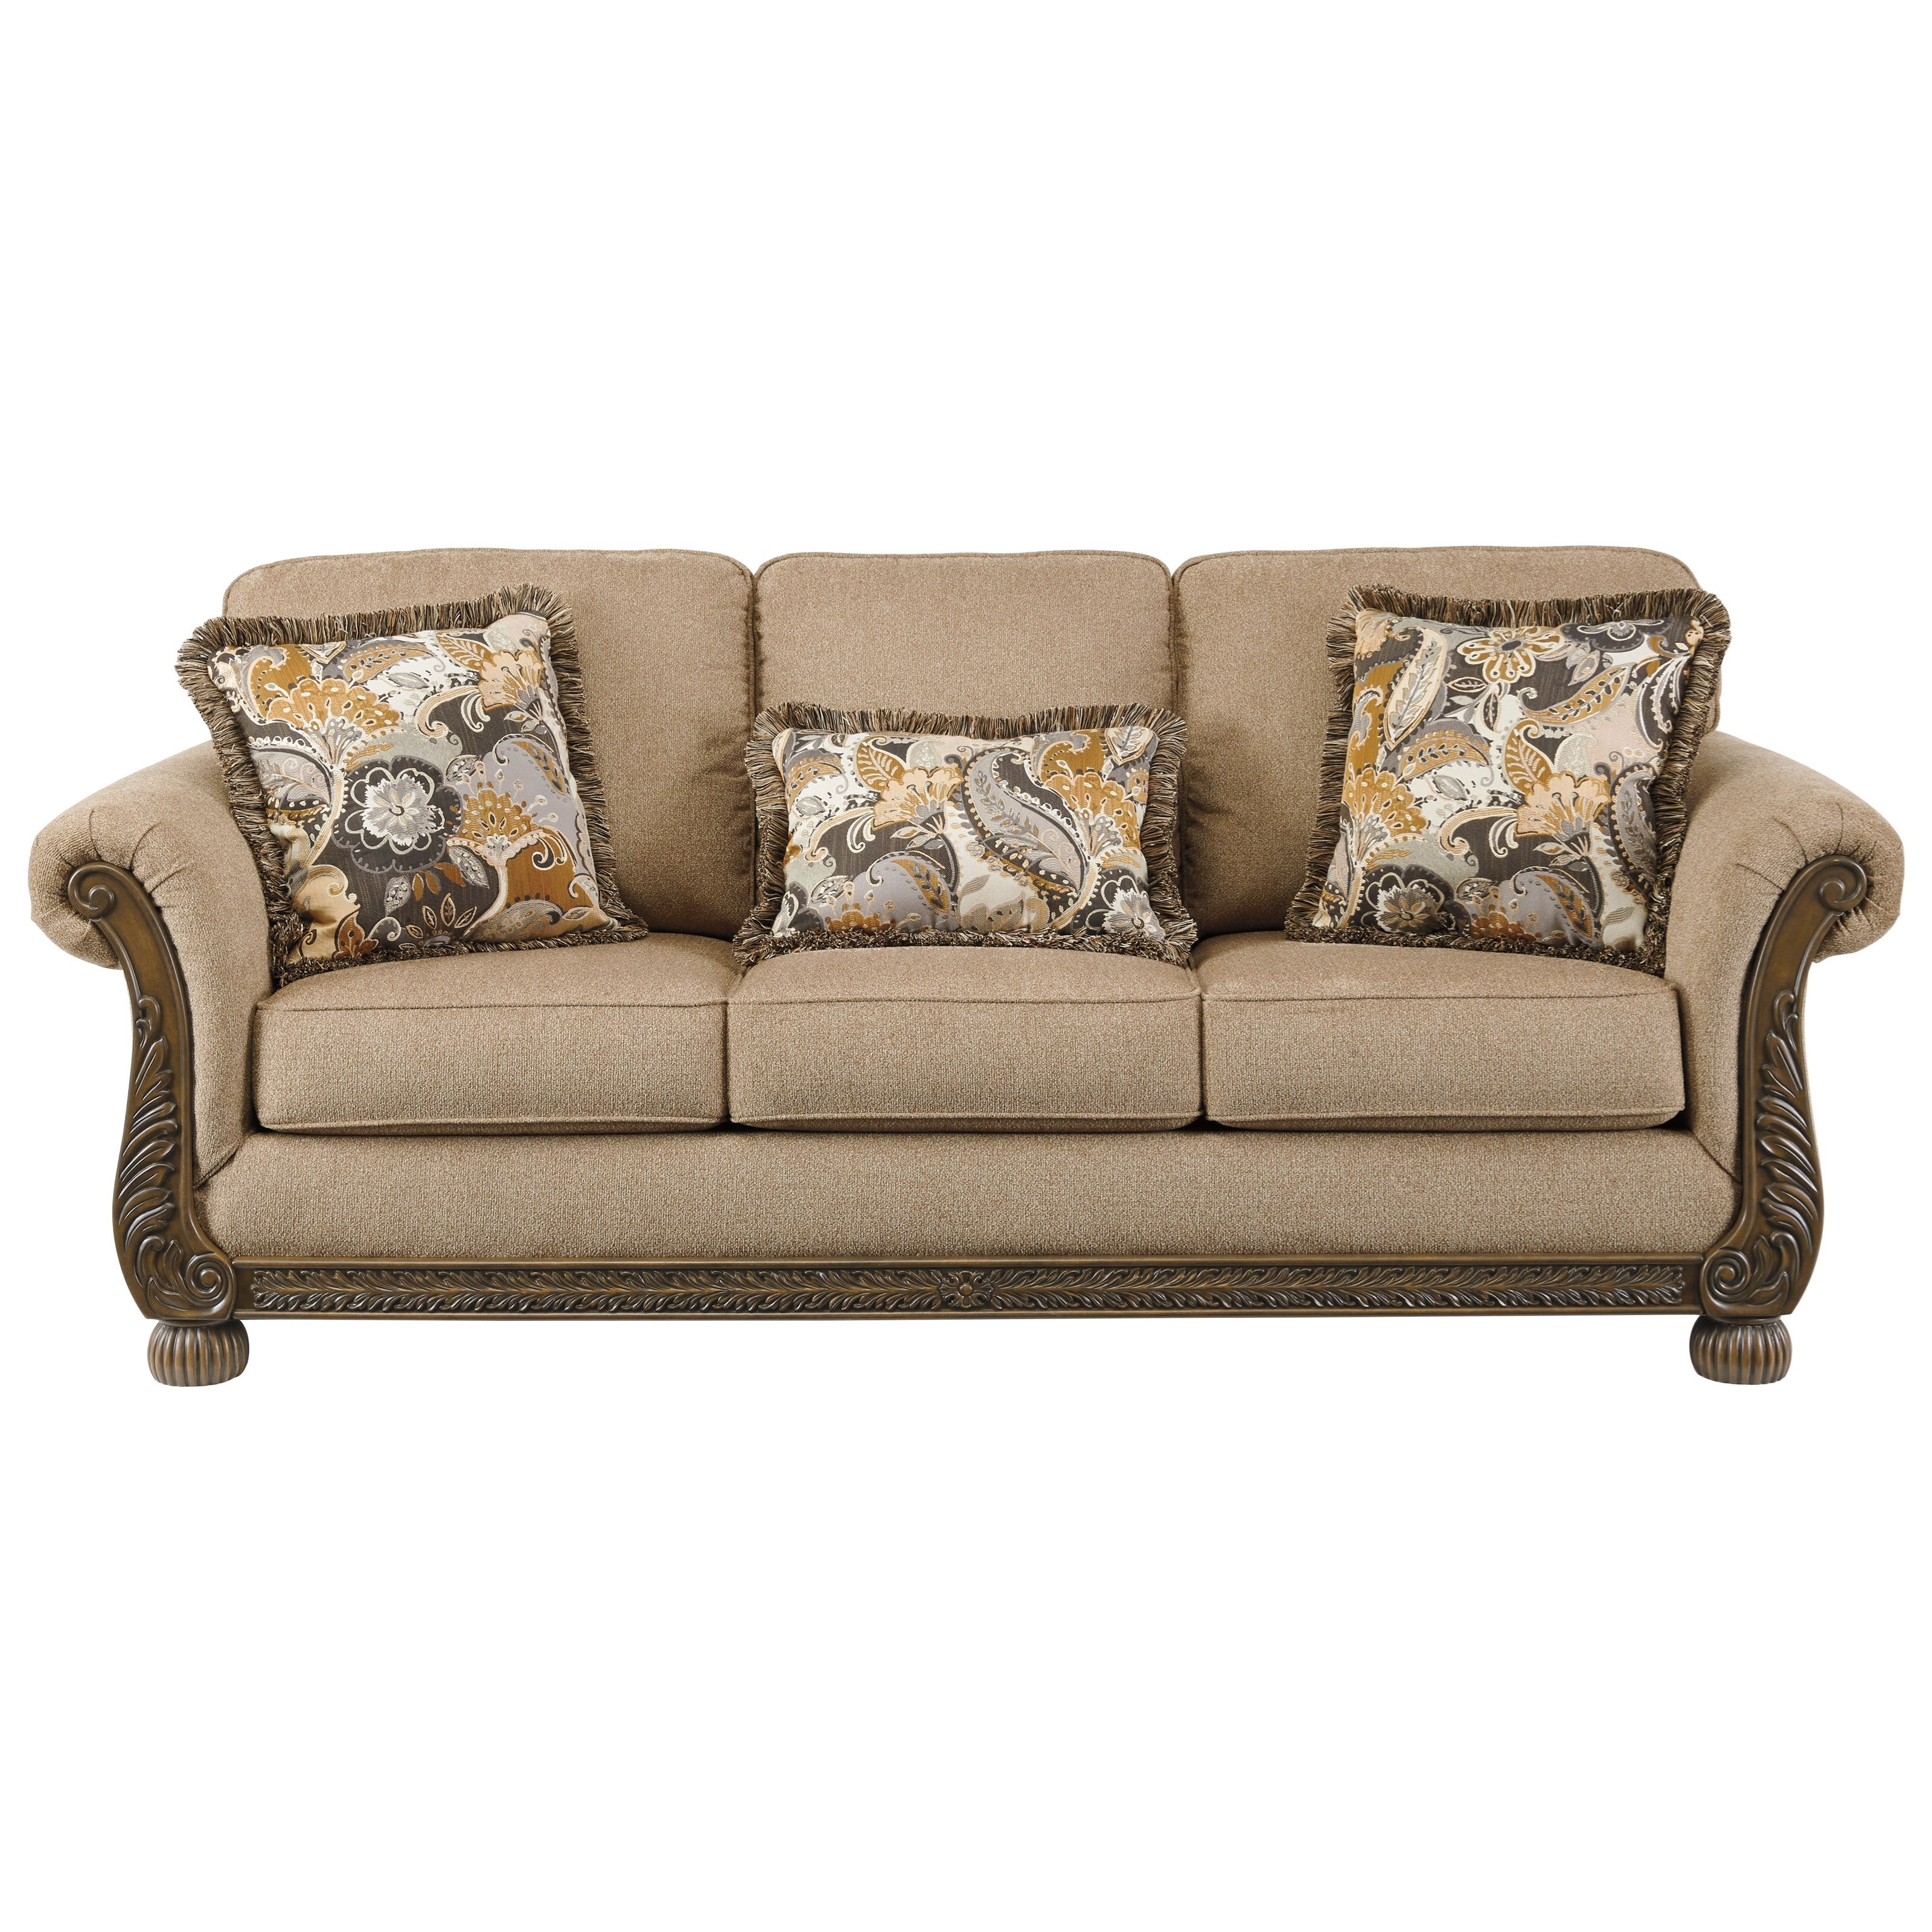 Westerwood Sofa by Signature Design by Ashley at Beck's Furniture